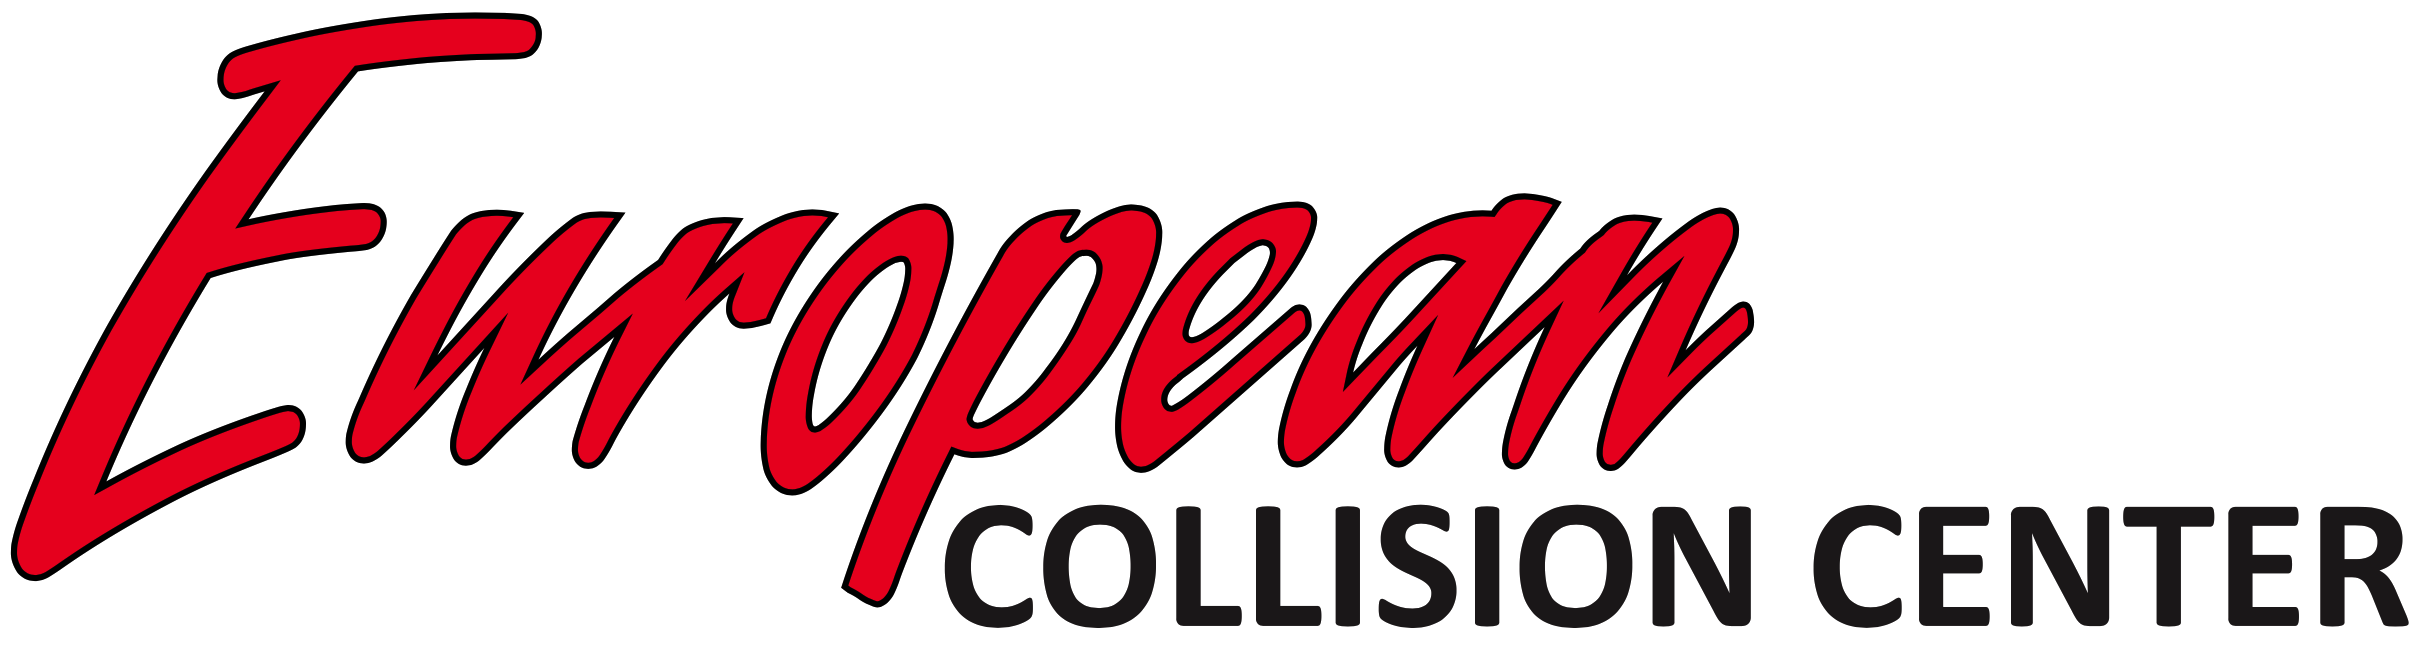 European Collision Center Logo